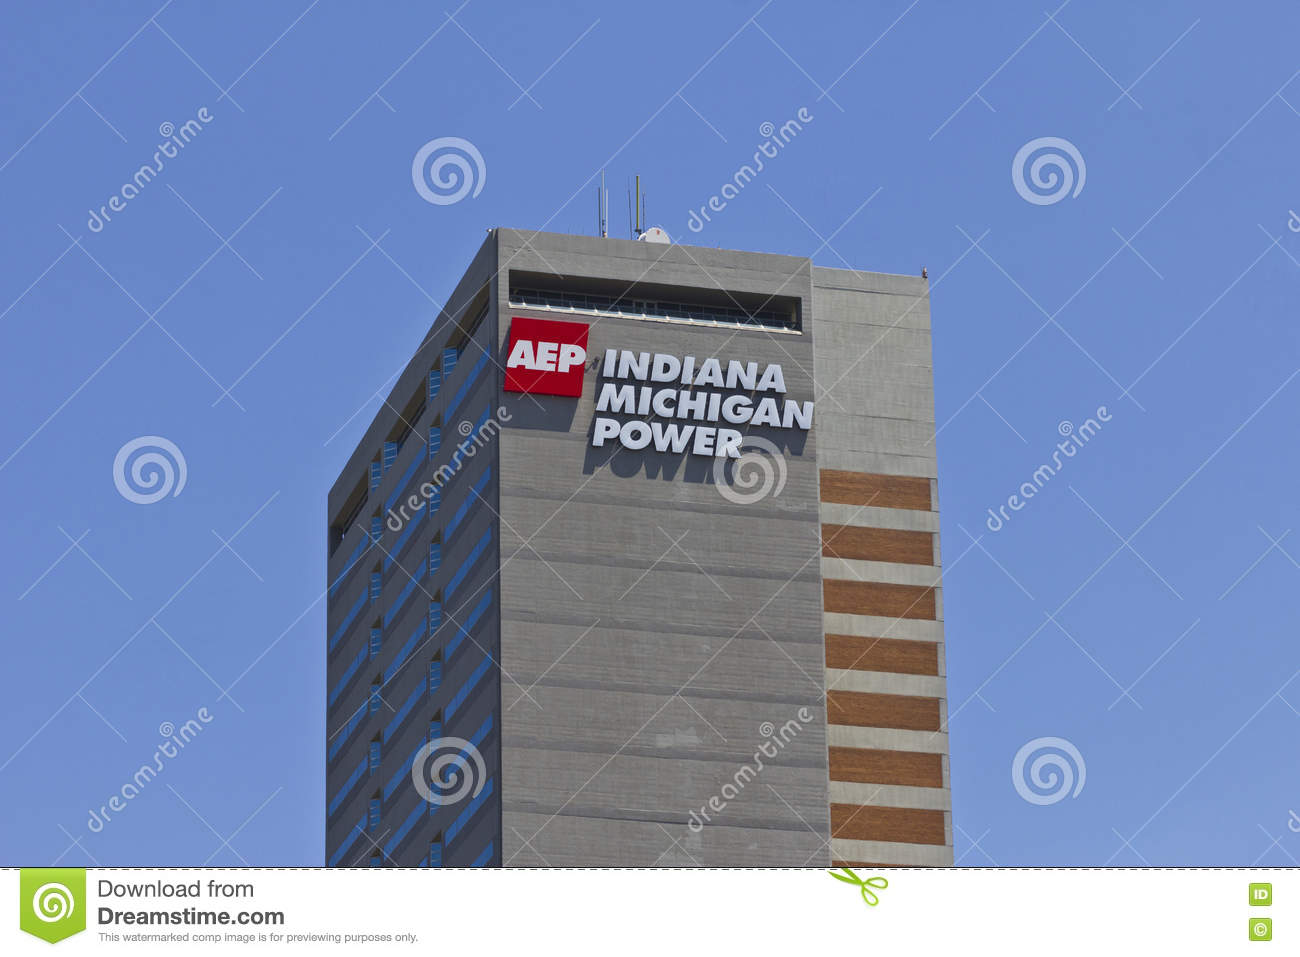 aep power michigan indiana wayne headquarters circa division ft july center electric american preview